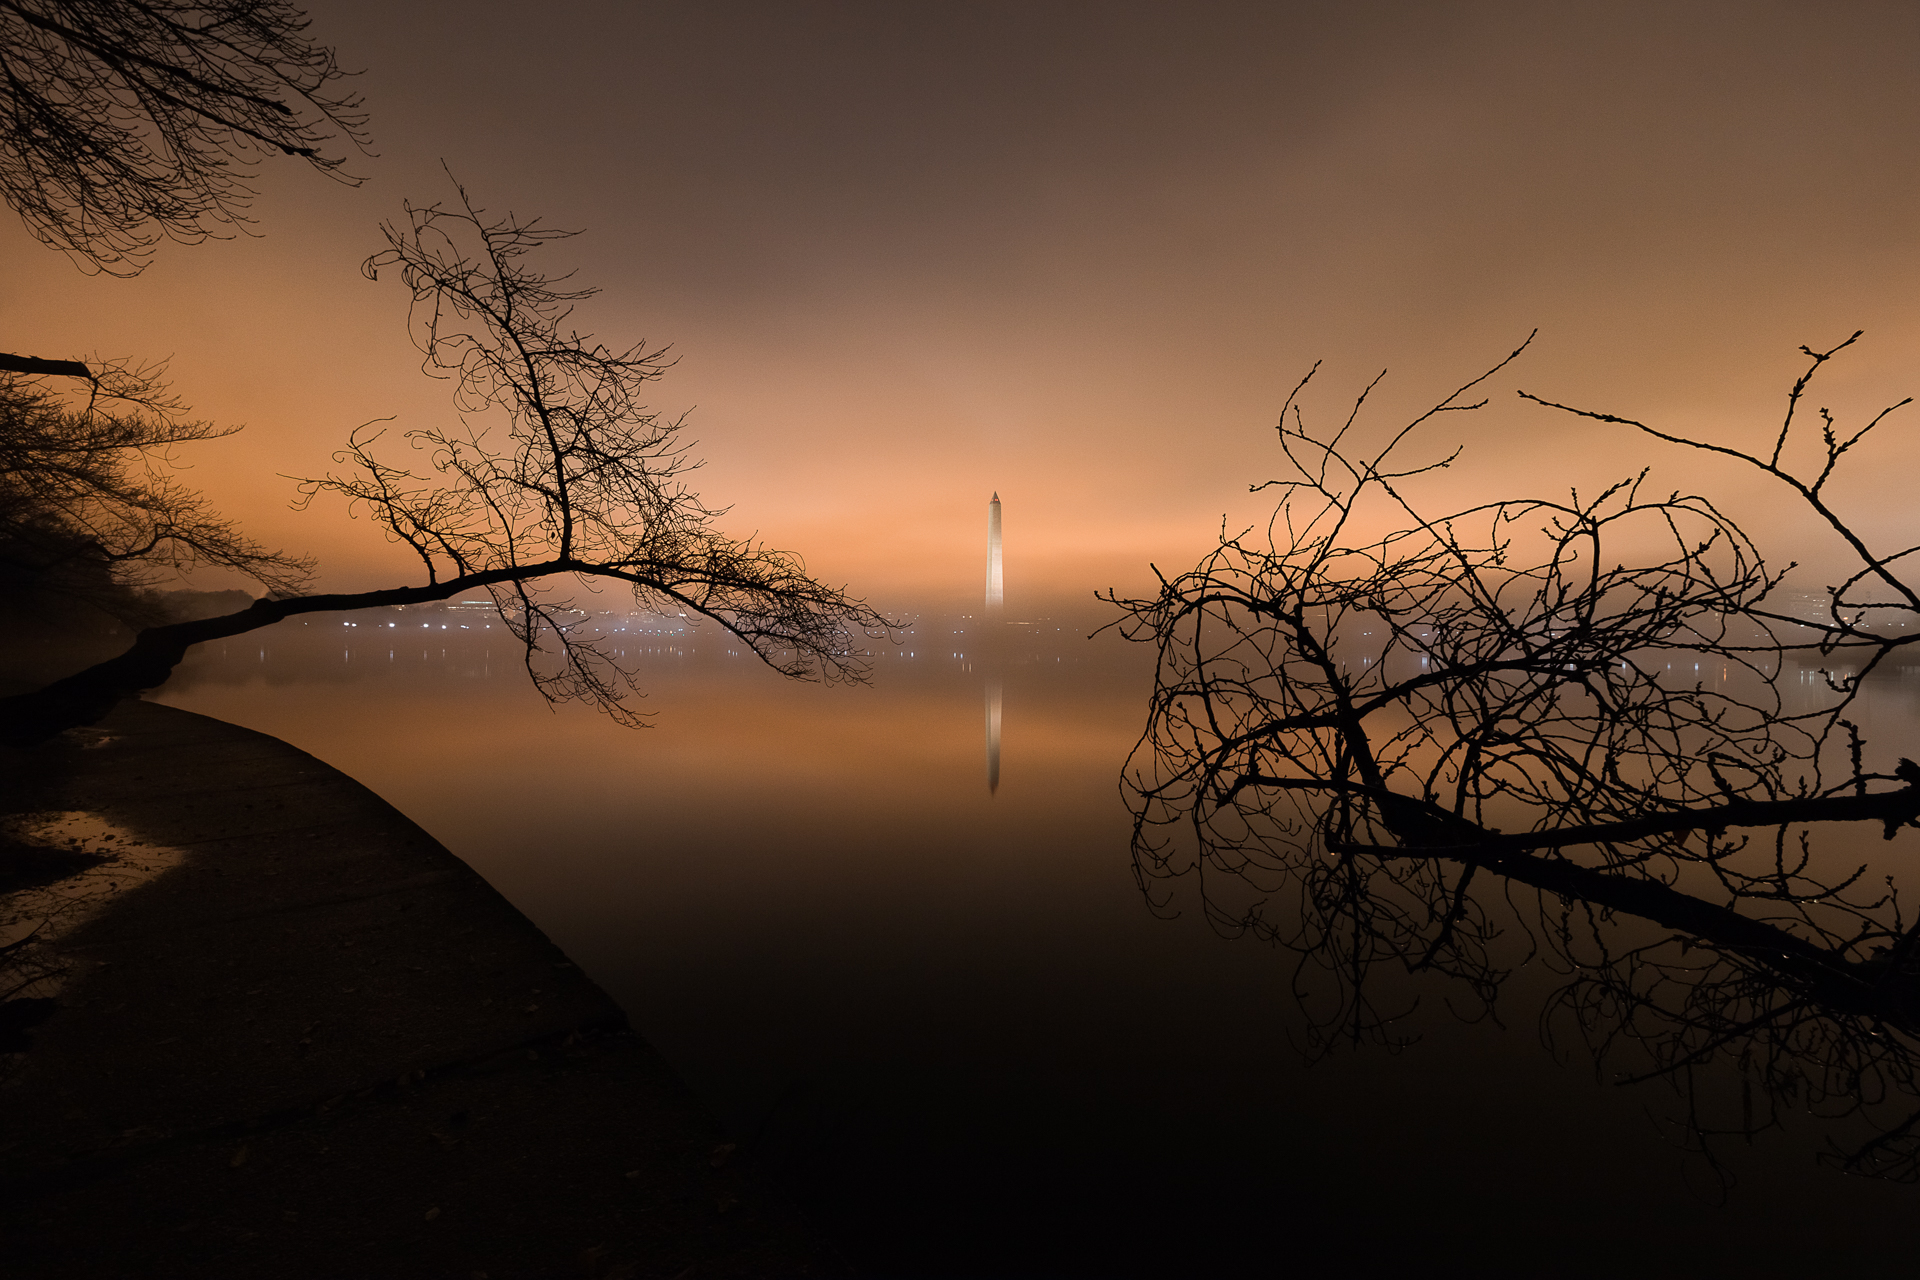 The Dark and Eerie – A foggy night on the Tidal Basin{&amp;nbsp;}(Image: Zack Lewkowicz)<p></p>